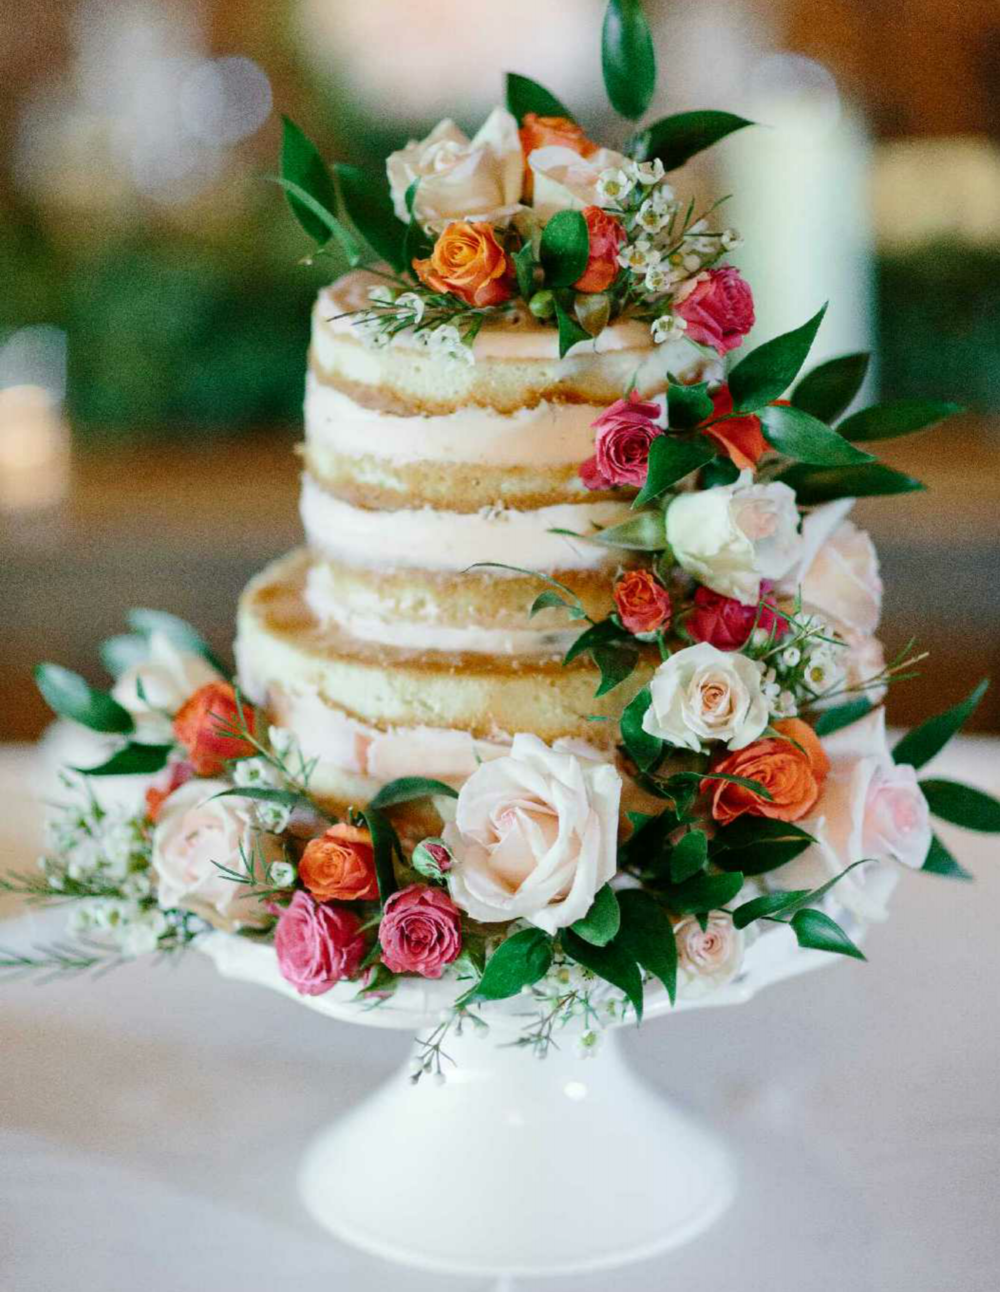 Naked Cake (shaved with blush frosting)